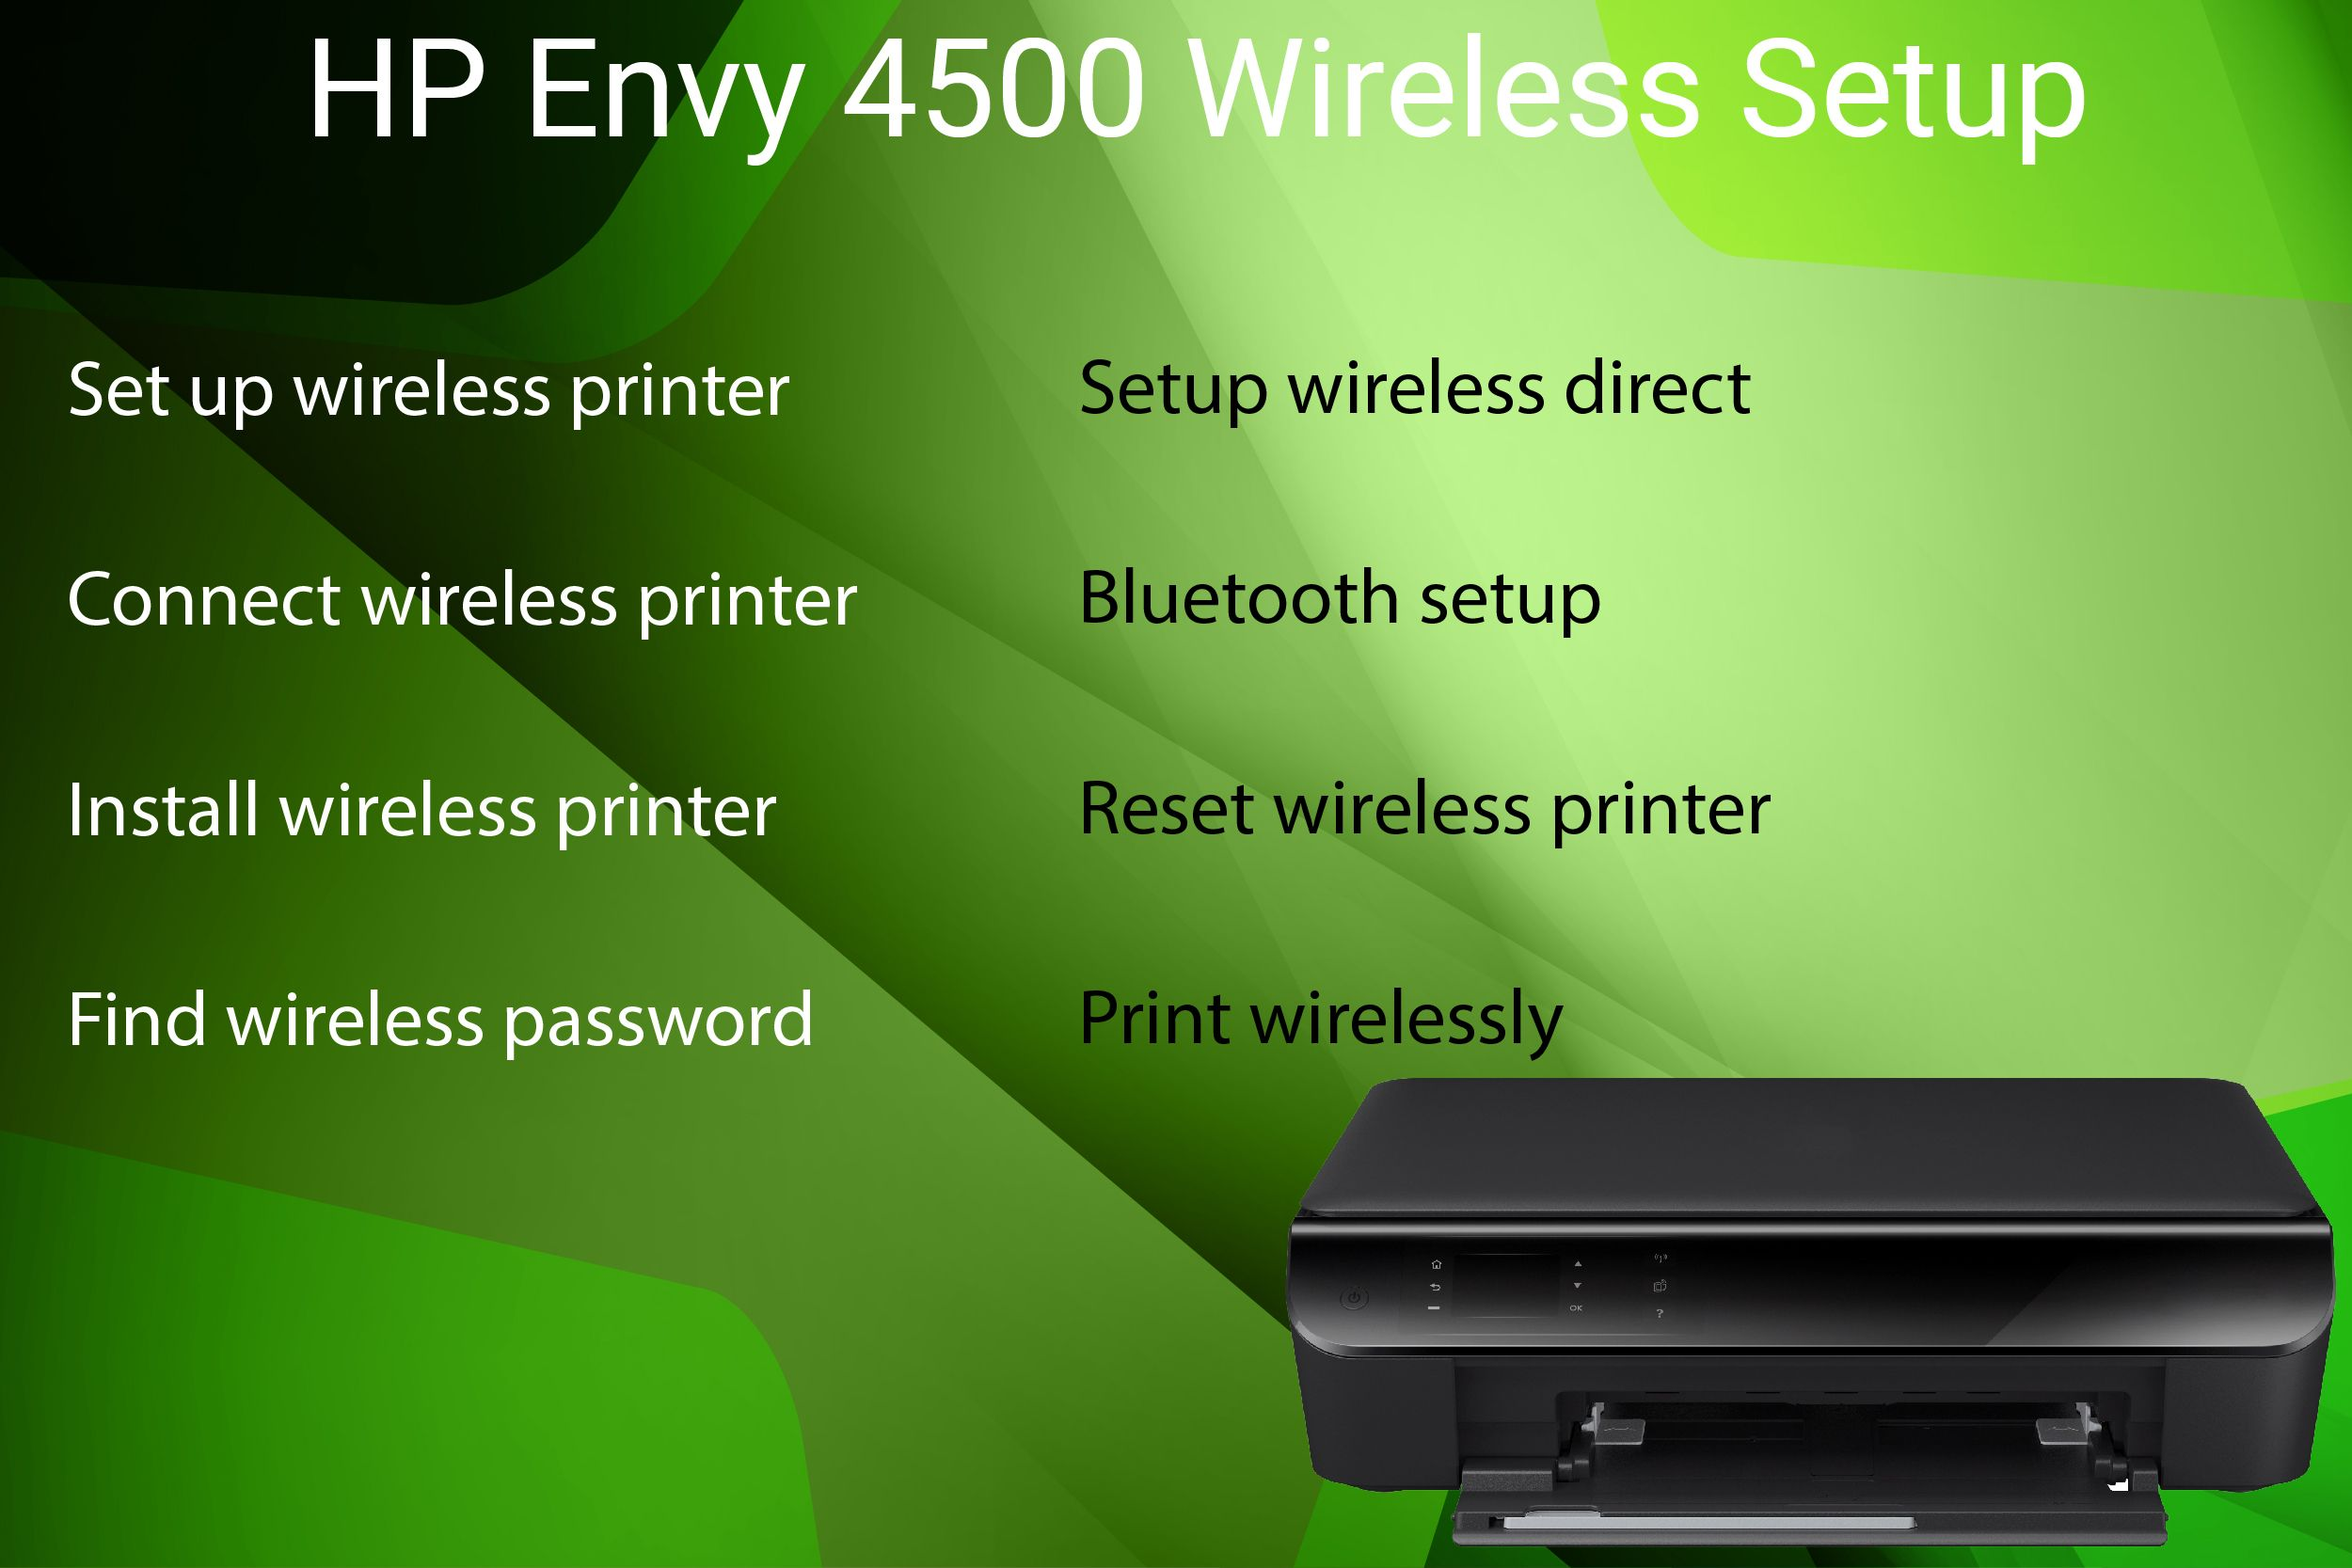 HP Envy 4500 wireless setup guide to setup, install and